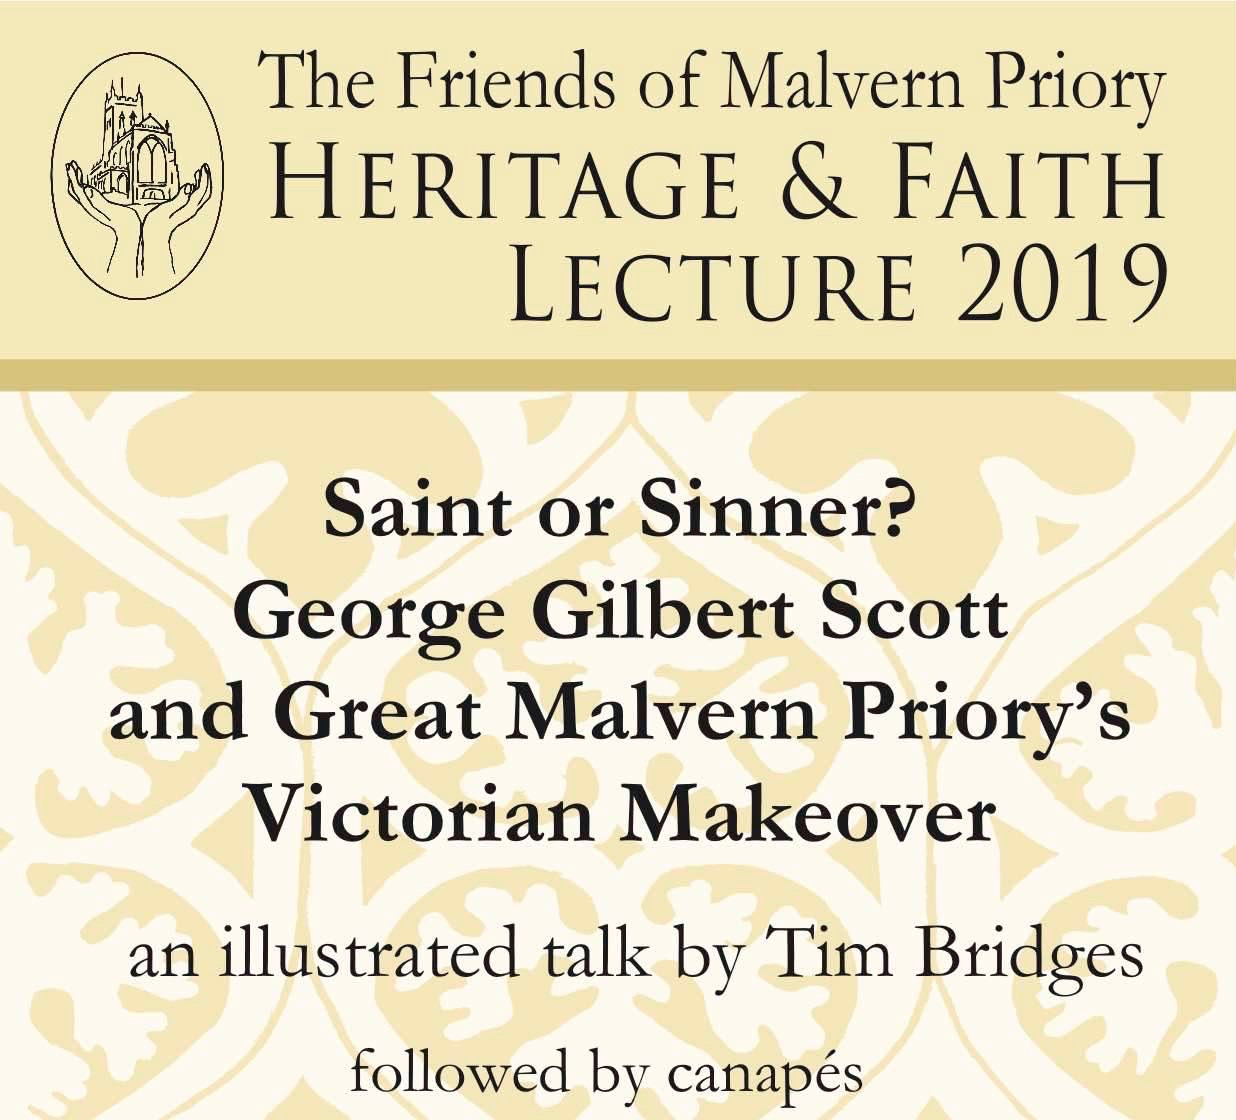 Saint or Sinner? George Gilbert Scott and Great Malvern Priory's Victorian Makeover banner image